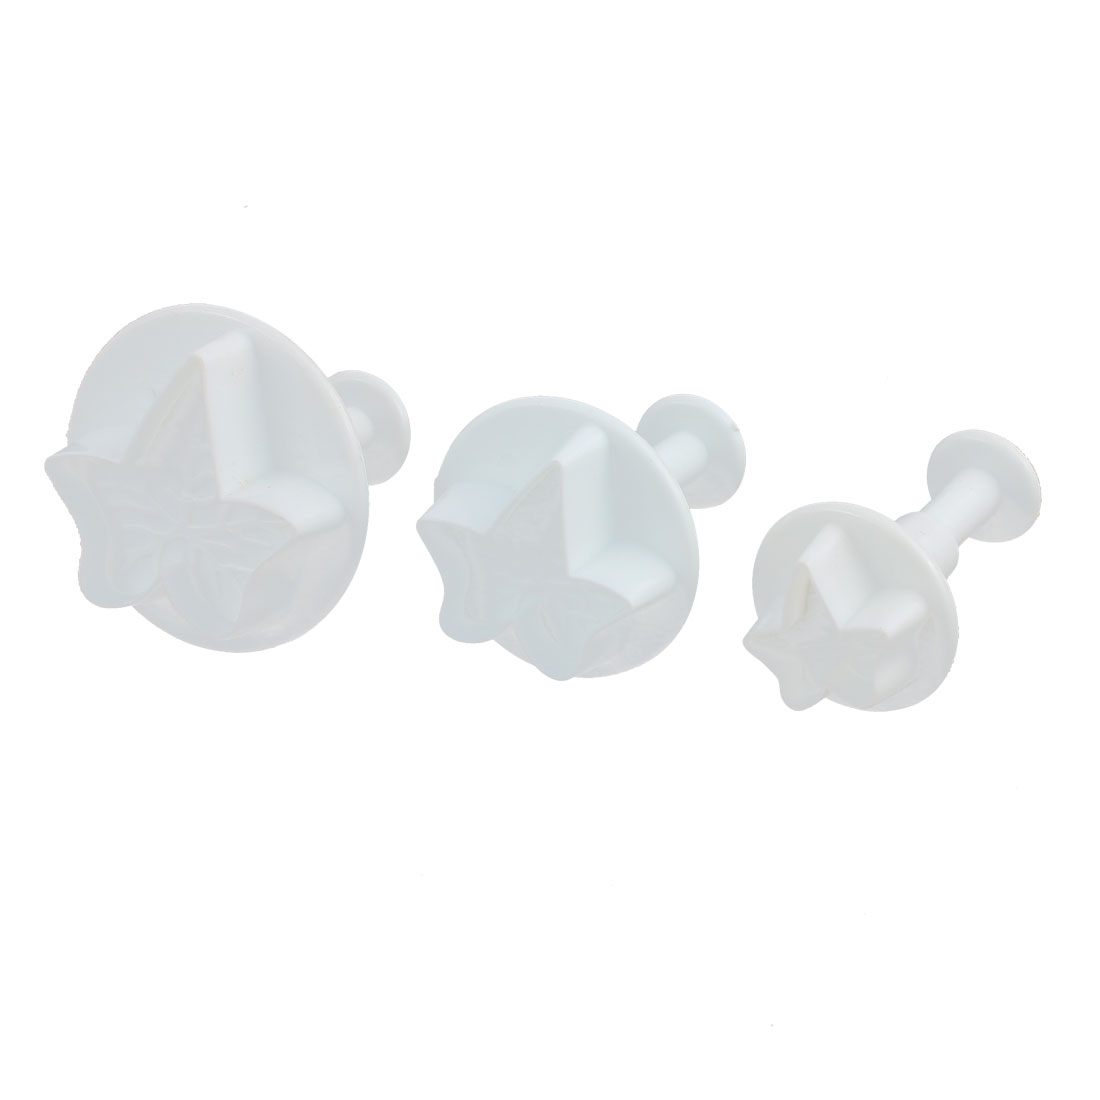 Maple Leaf Shaped Fondant Cake Decorating Mold Mould Plunger Cutter 3 Pcs